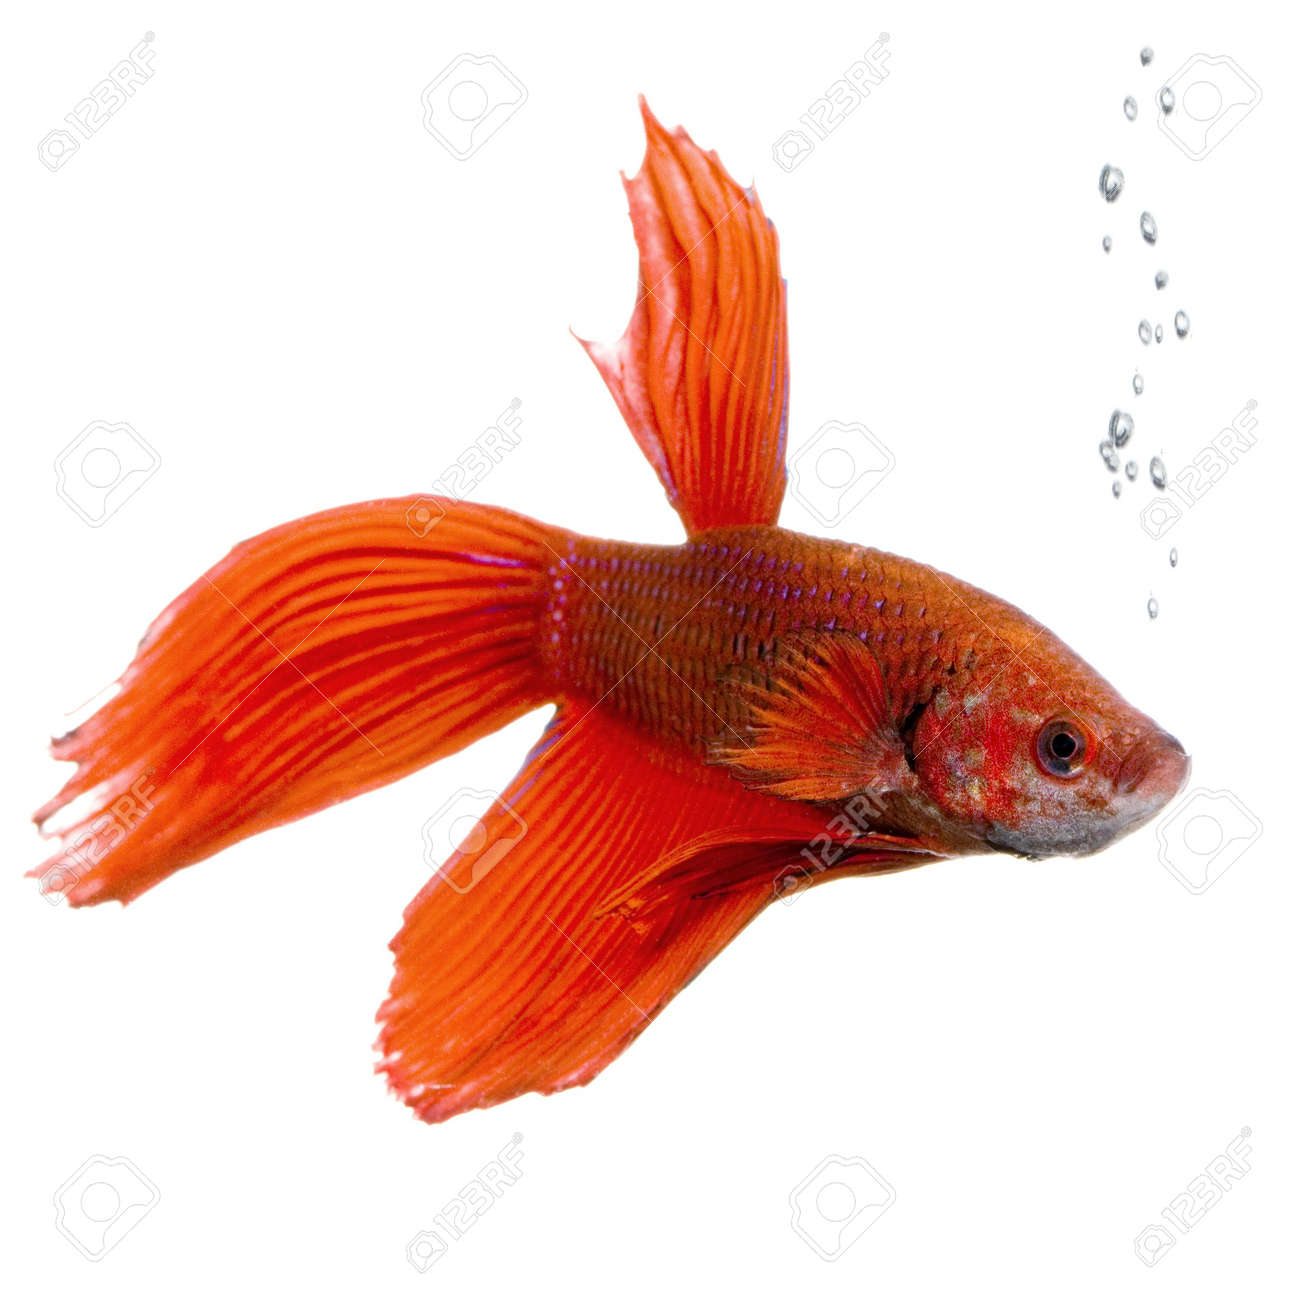 shot of a red Siamese fighting fish under water in front of a white background Stock Photo - 1124841